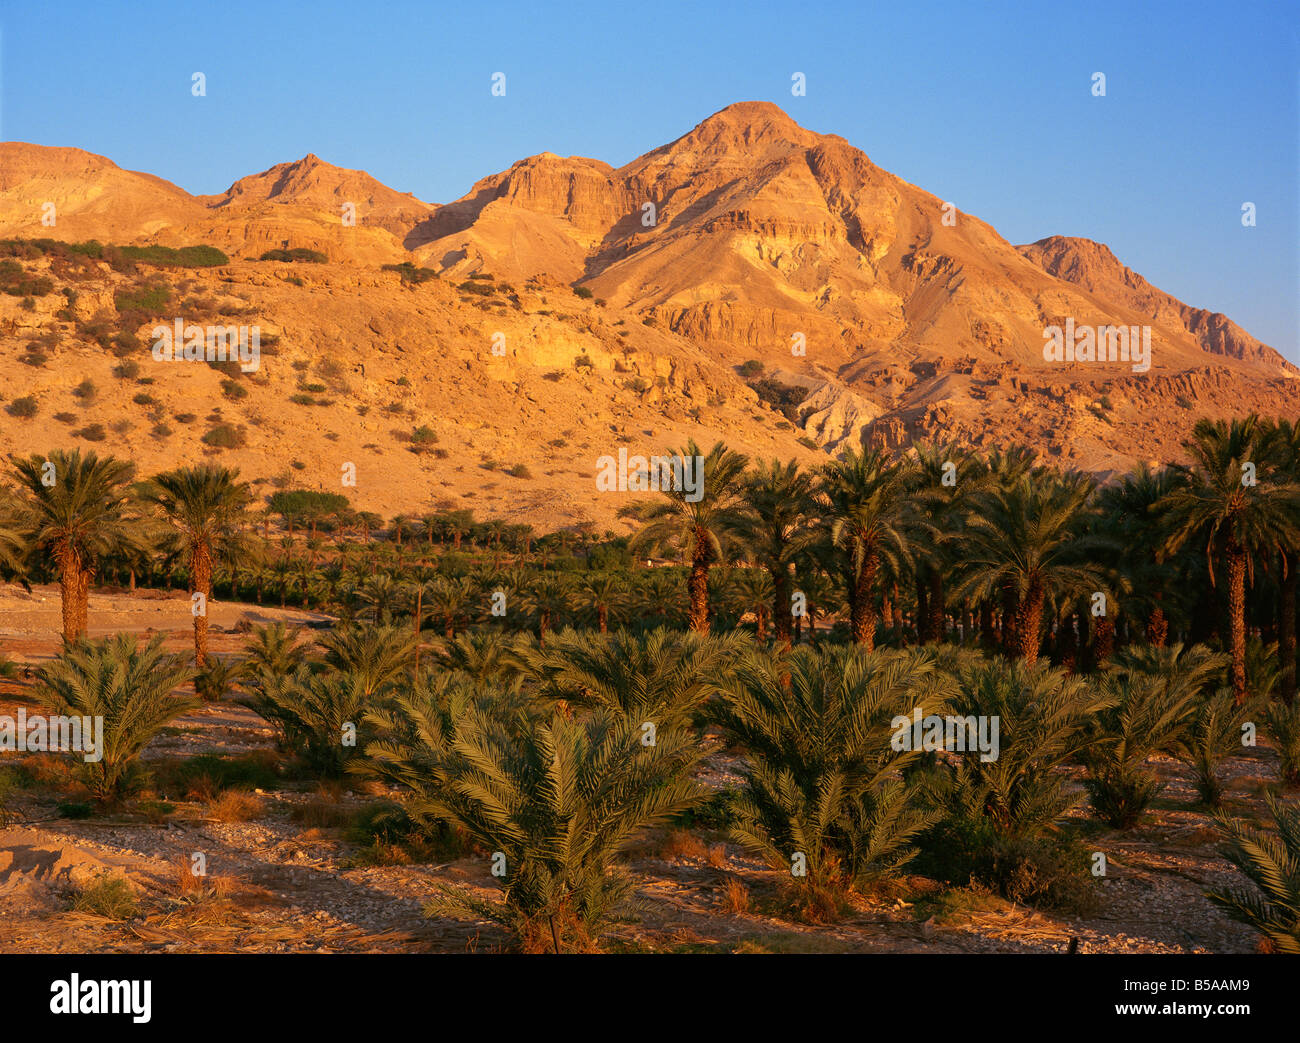 Palm trees and Mount Ishai at Ein Gedi in the Dead Sea area of Israel, Middle East - Stock Image